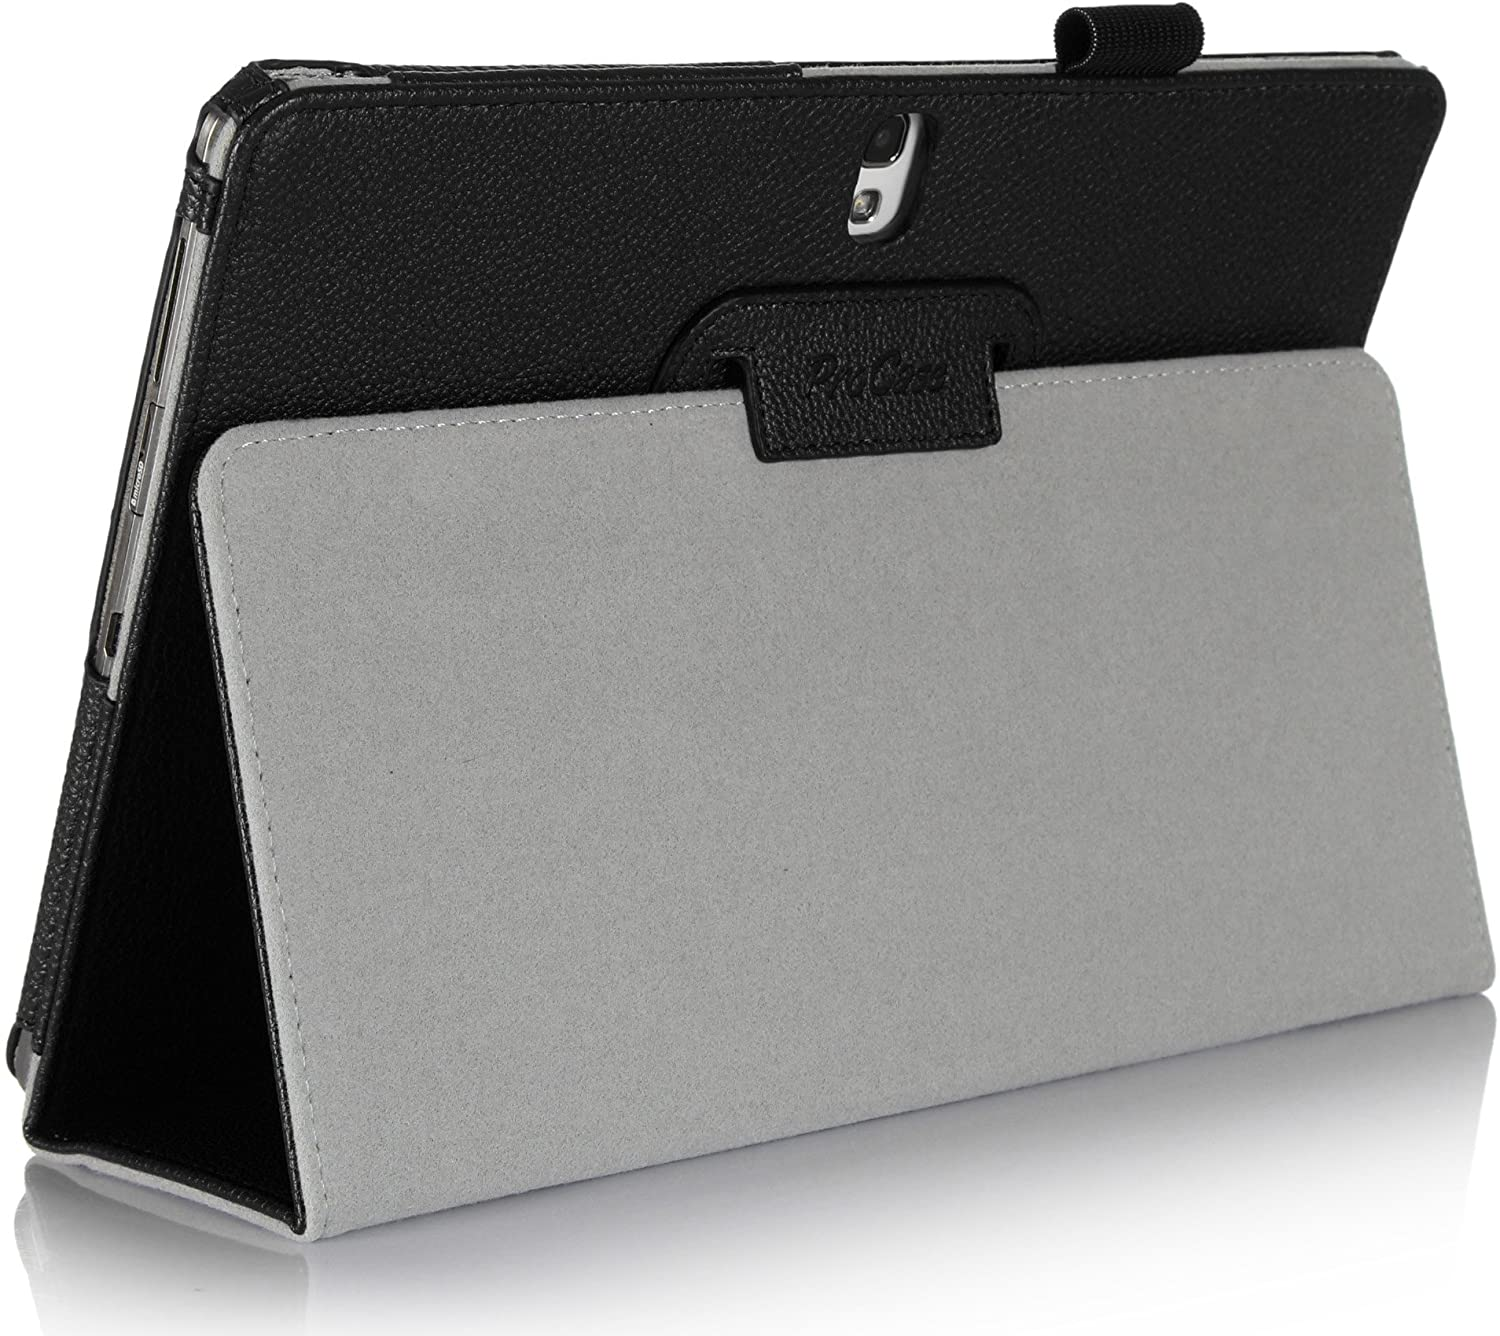 Galaxy Tab 2 10.1 Leather Folio Cover Case | ProCase